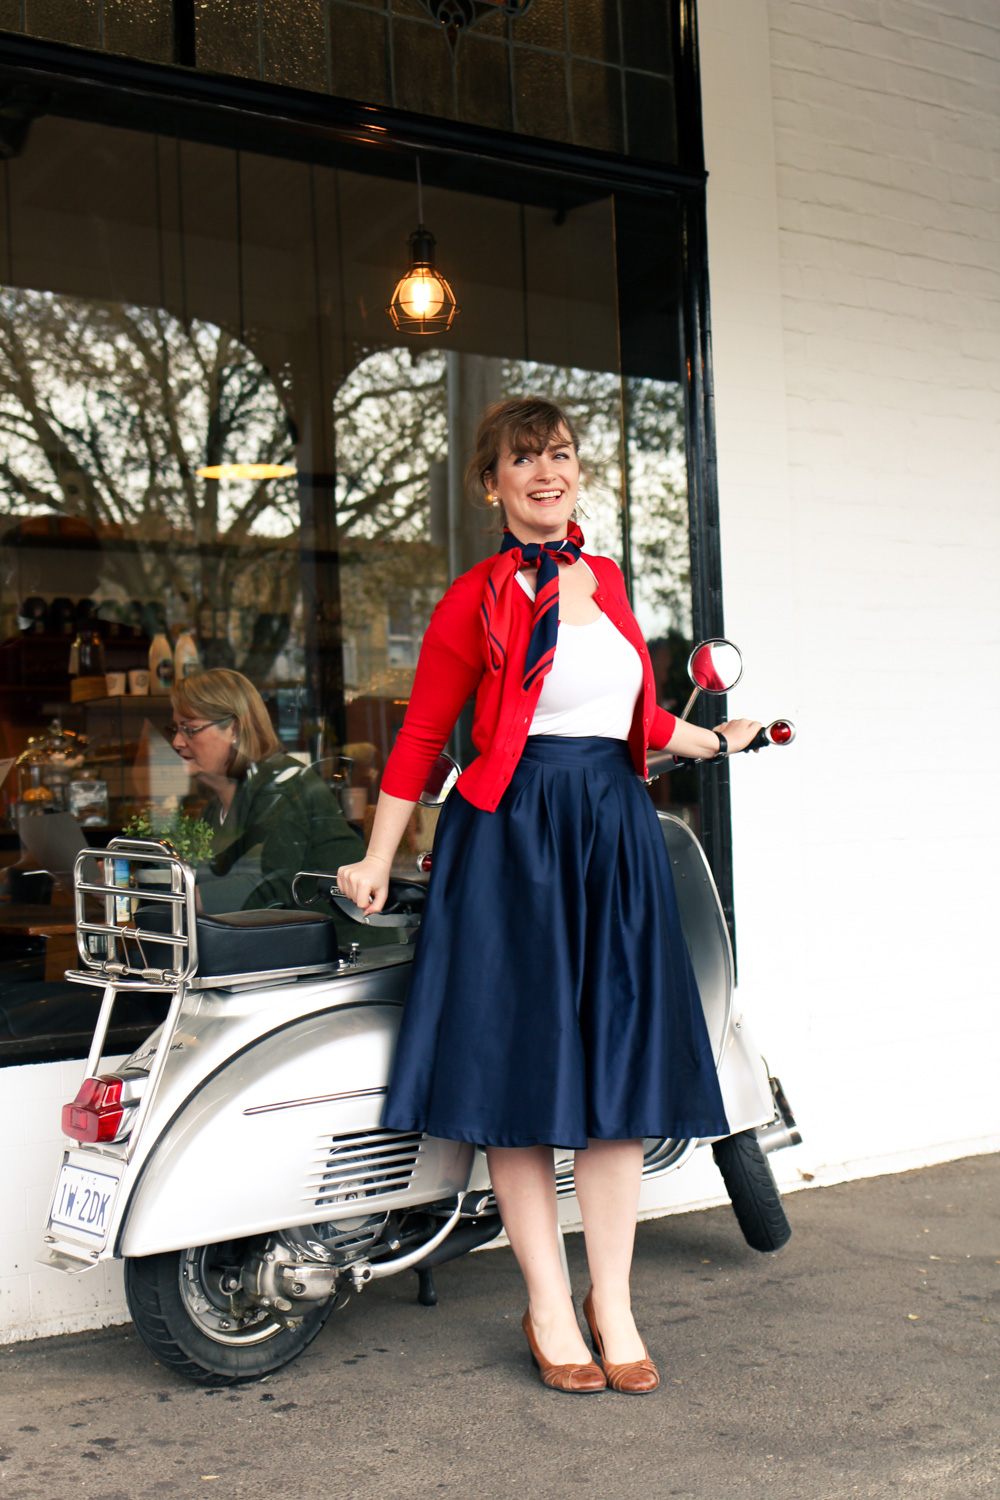 @findingfemme wears red, embroidered cardigan by Review Australia at The Tin Roof in Ballarat.